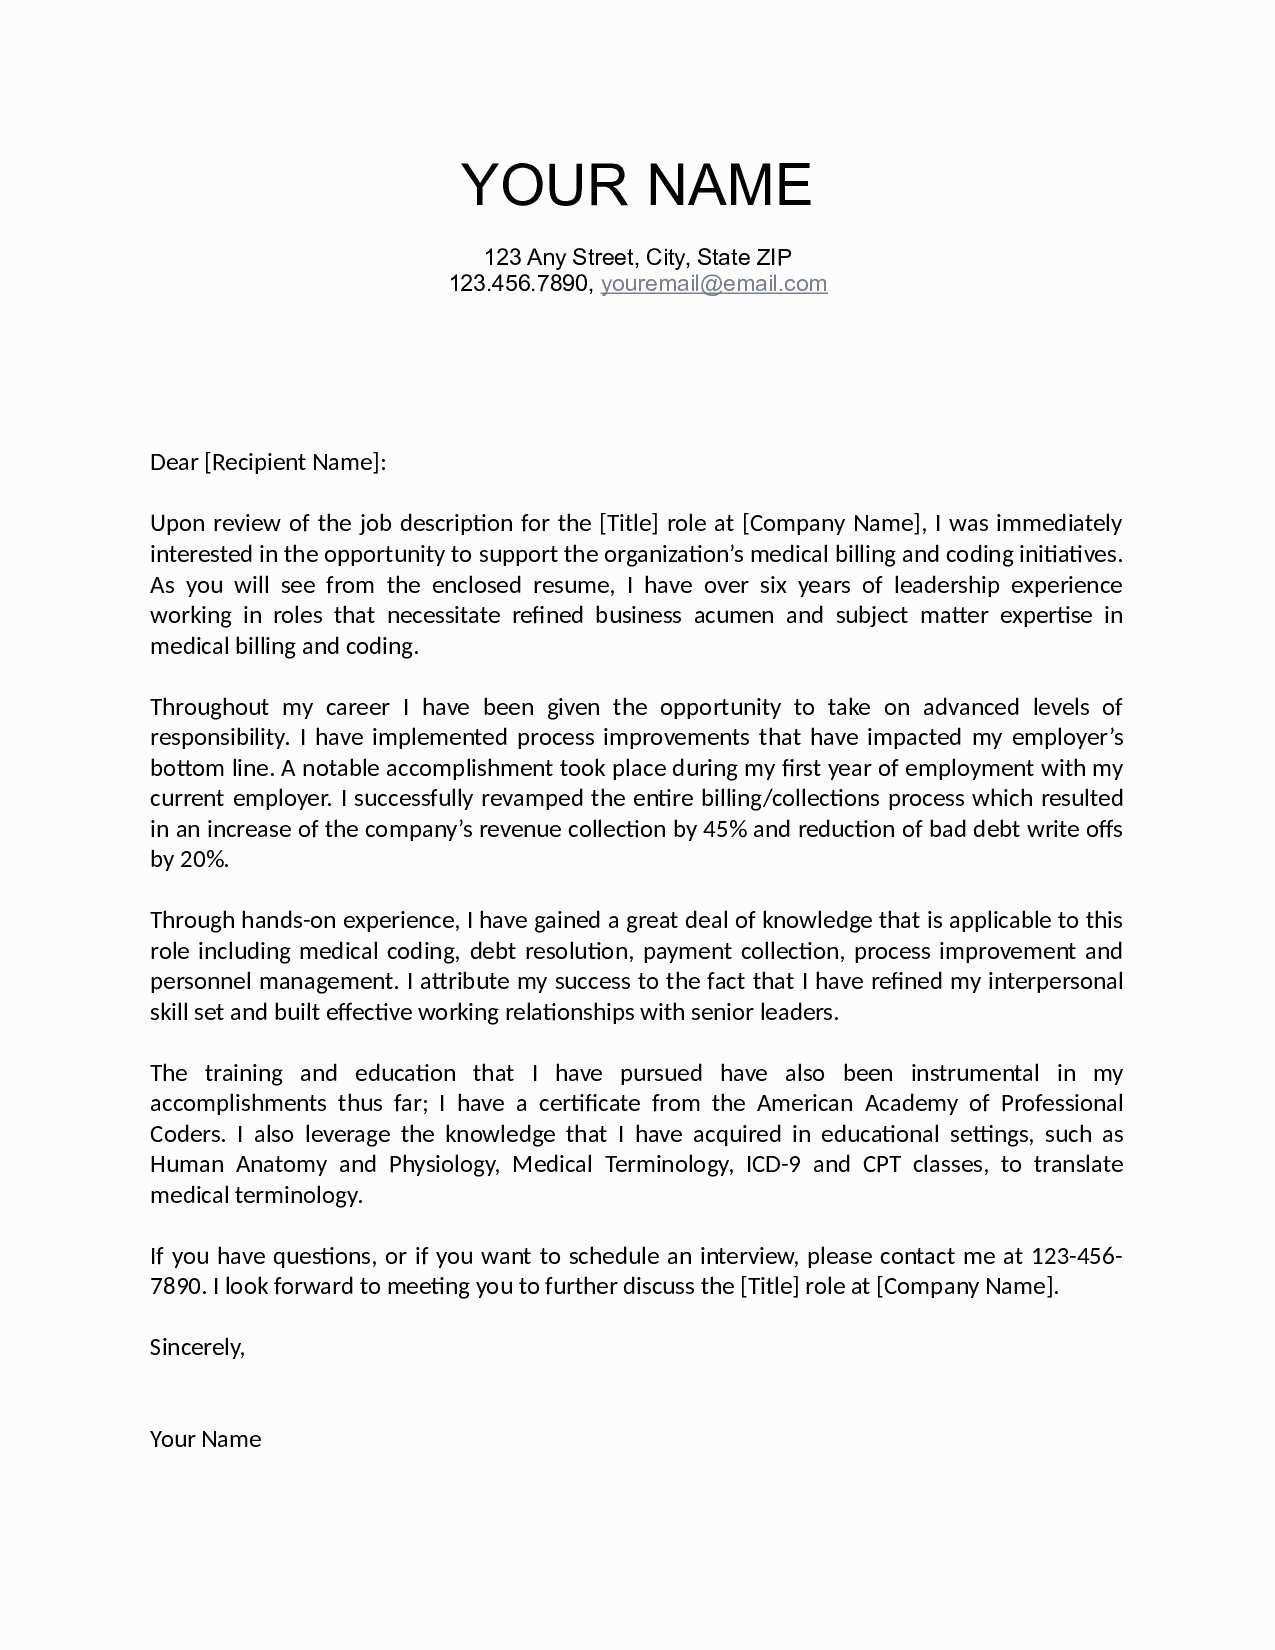 Apartment Offer Letter Template - Writing A Proposal Letter for A Job Best Job Fer Letter Template Us